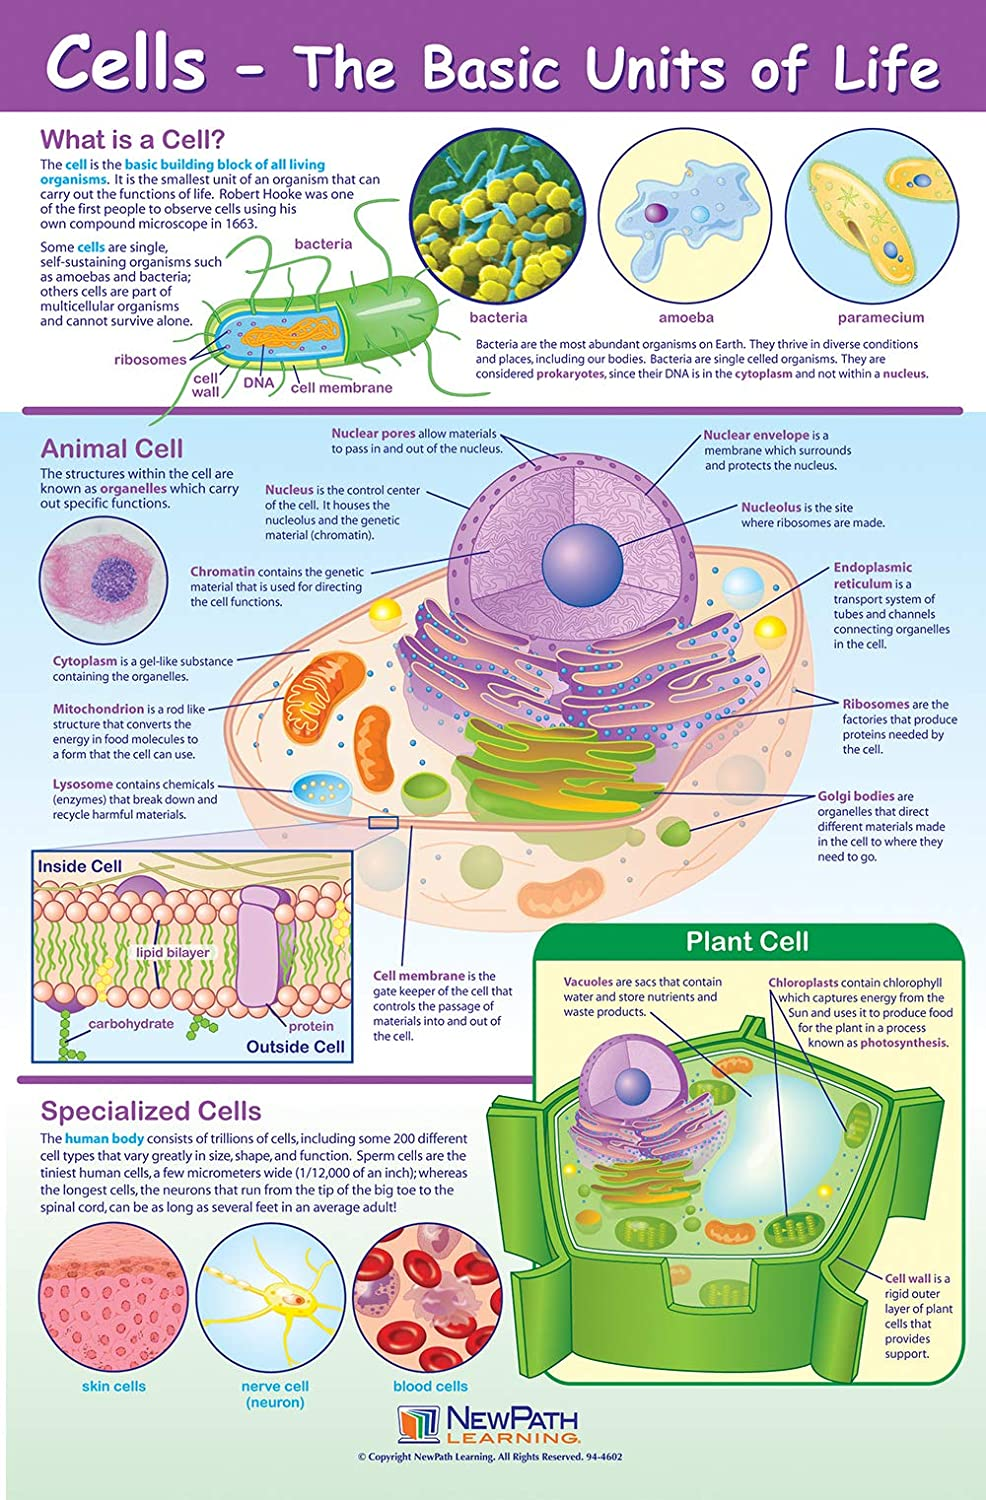 Laminated Cells Poster 23 x 35 Full-Color